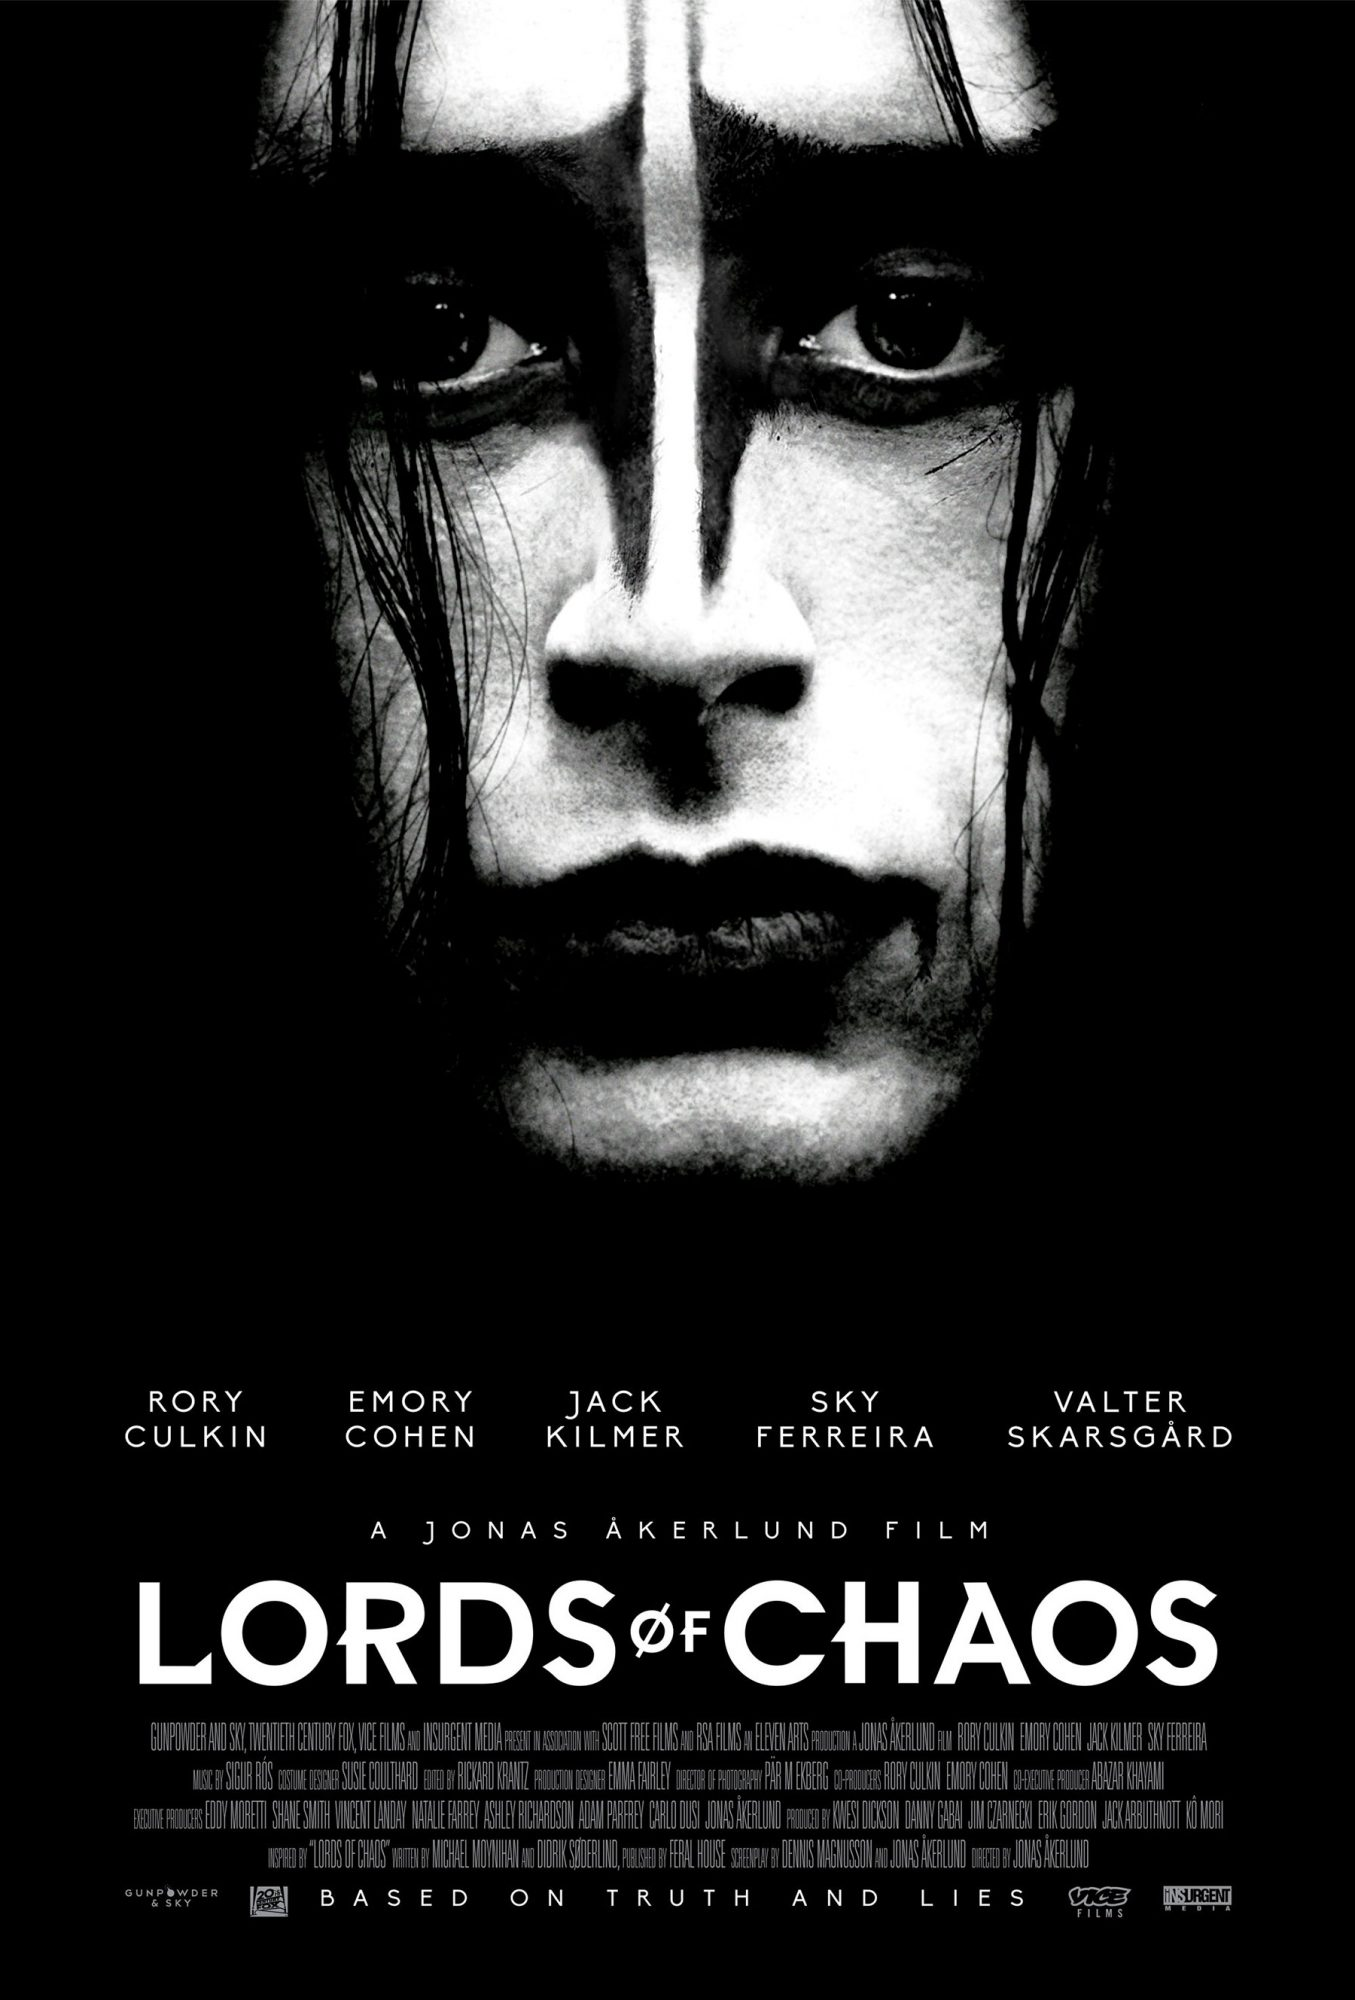 Lords of Chaos (2019) movie posterRory CulkinCR: 20th Century Fox